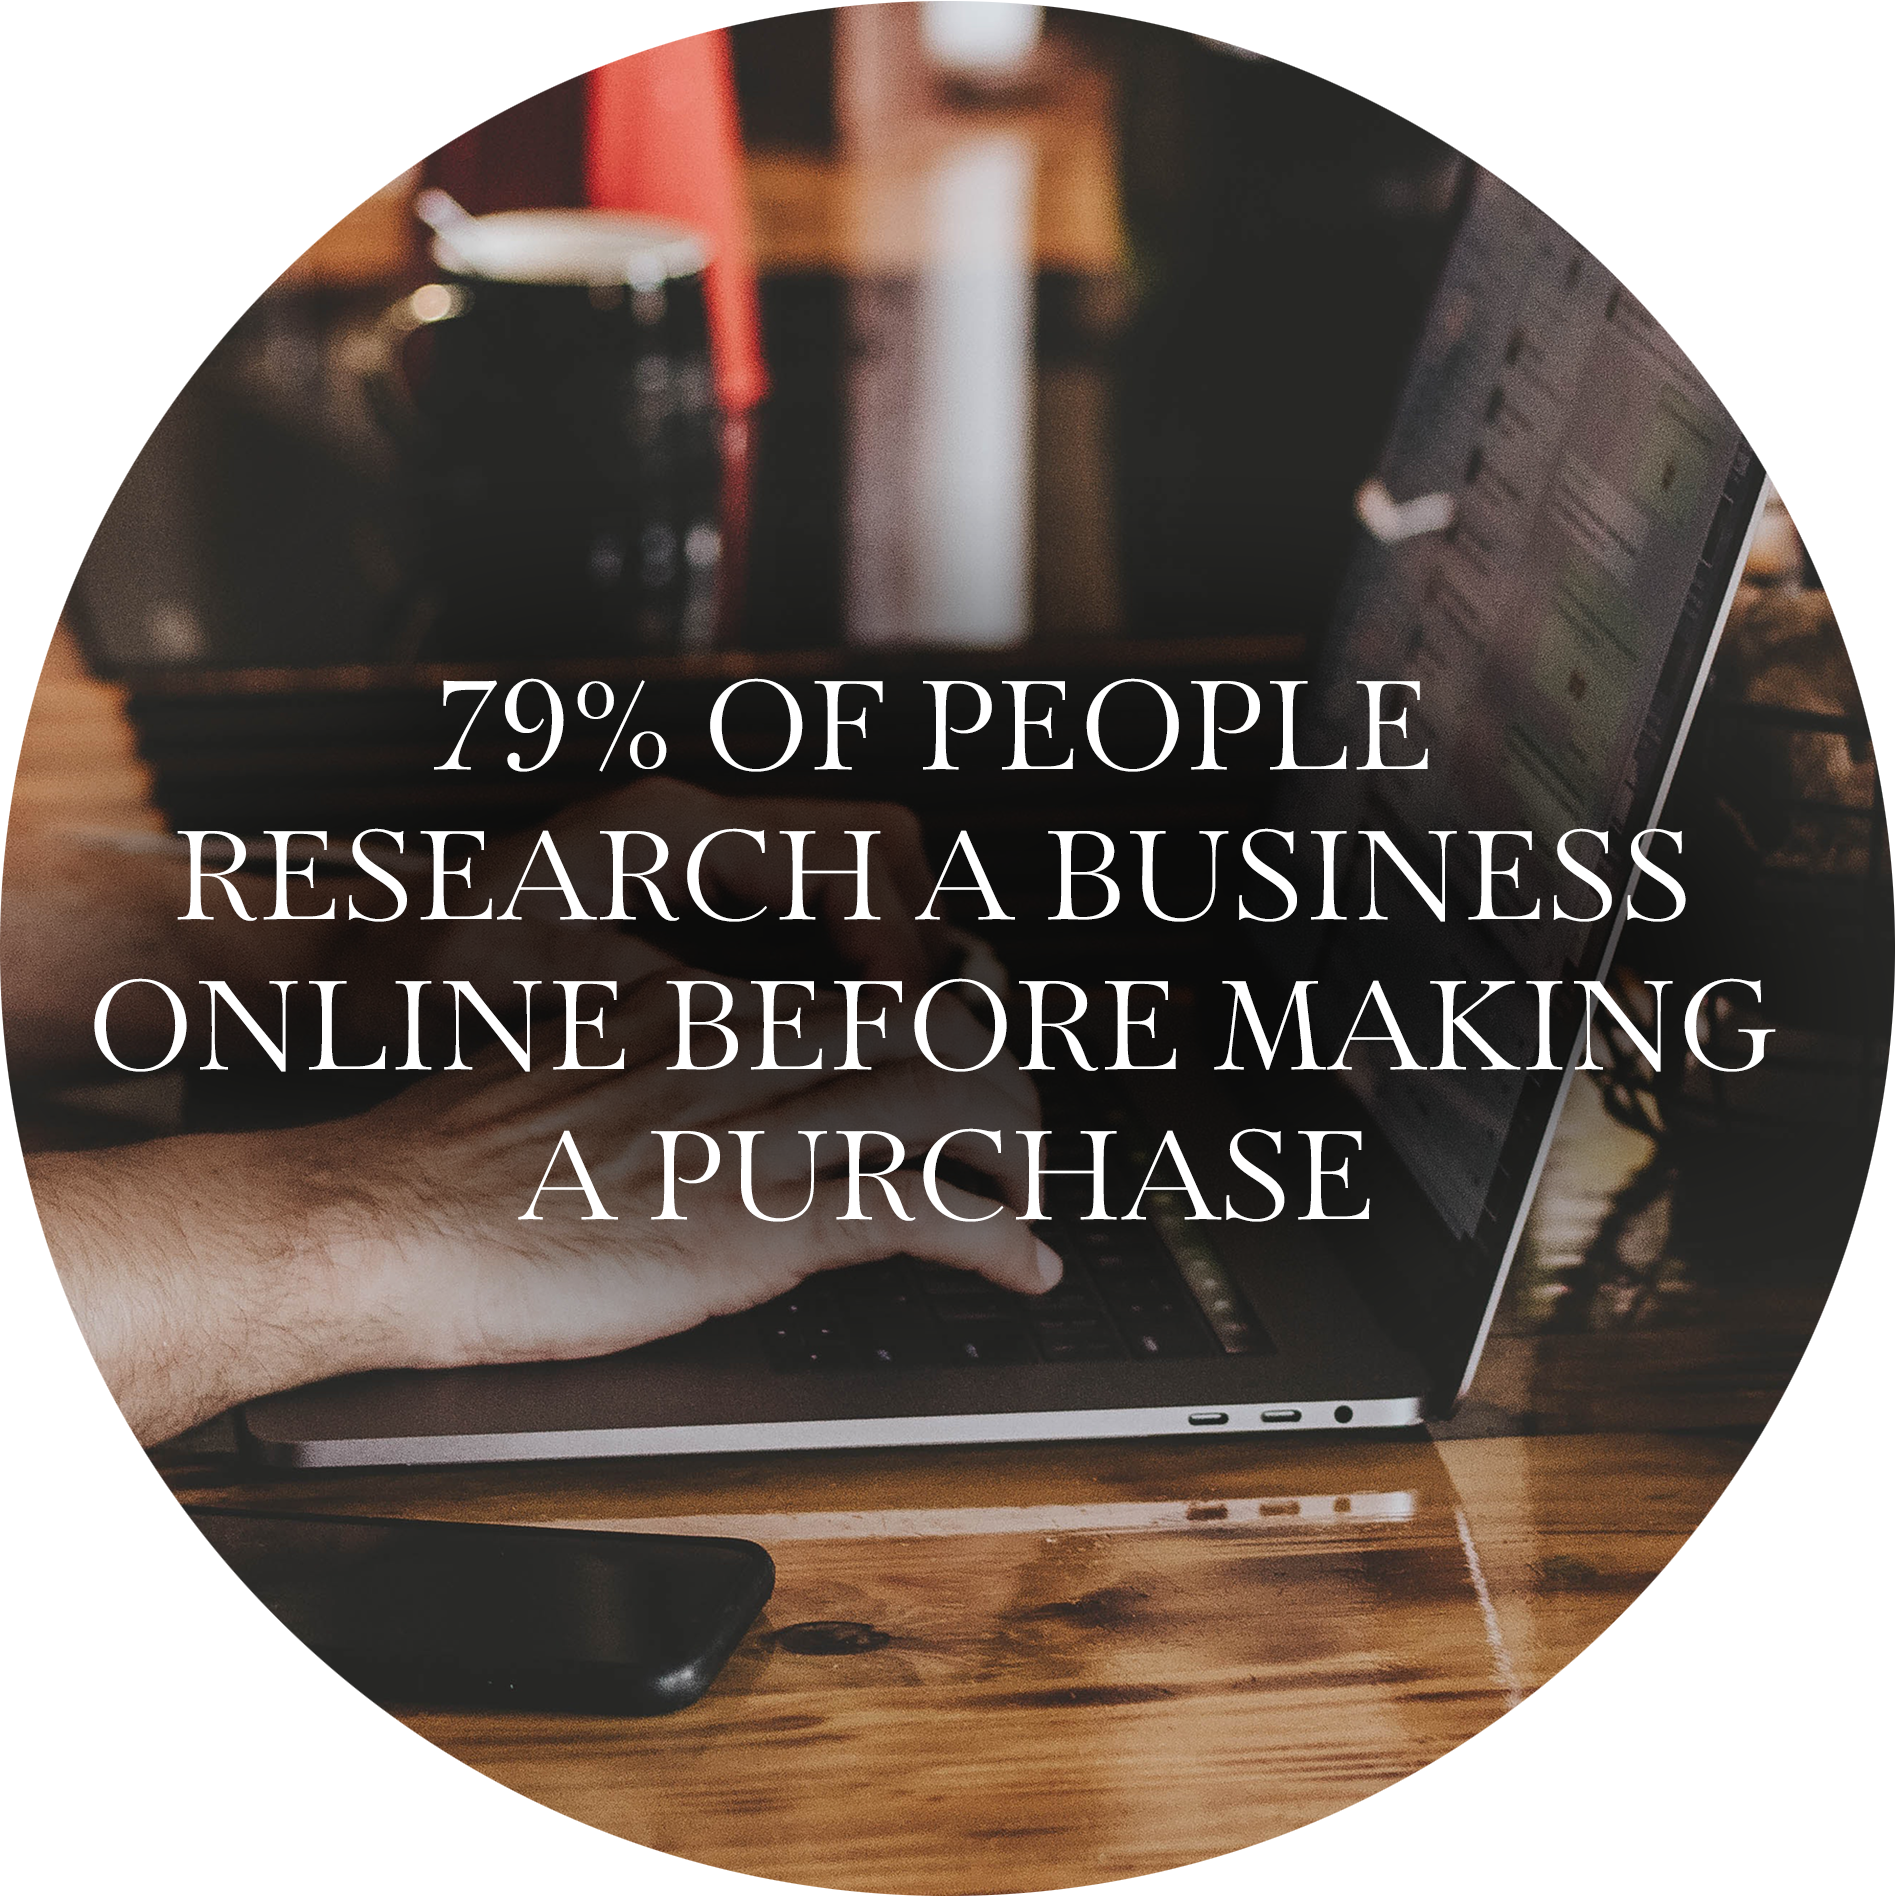 79% of people research a business online before making a purchase